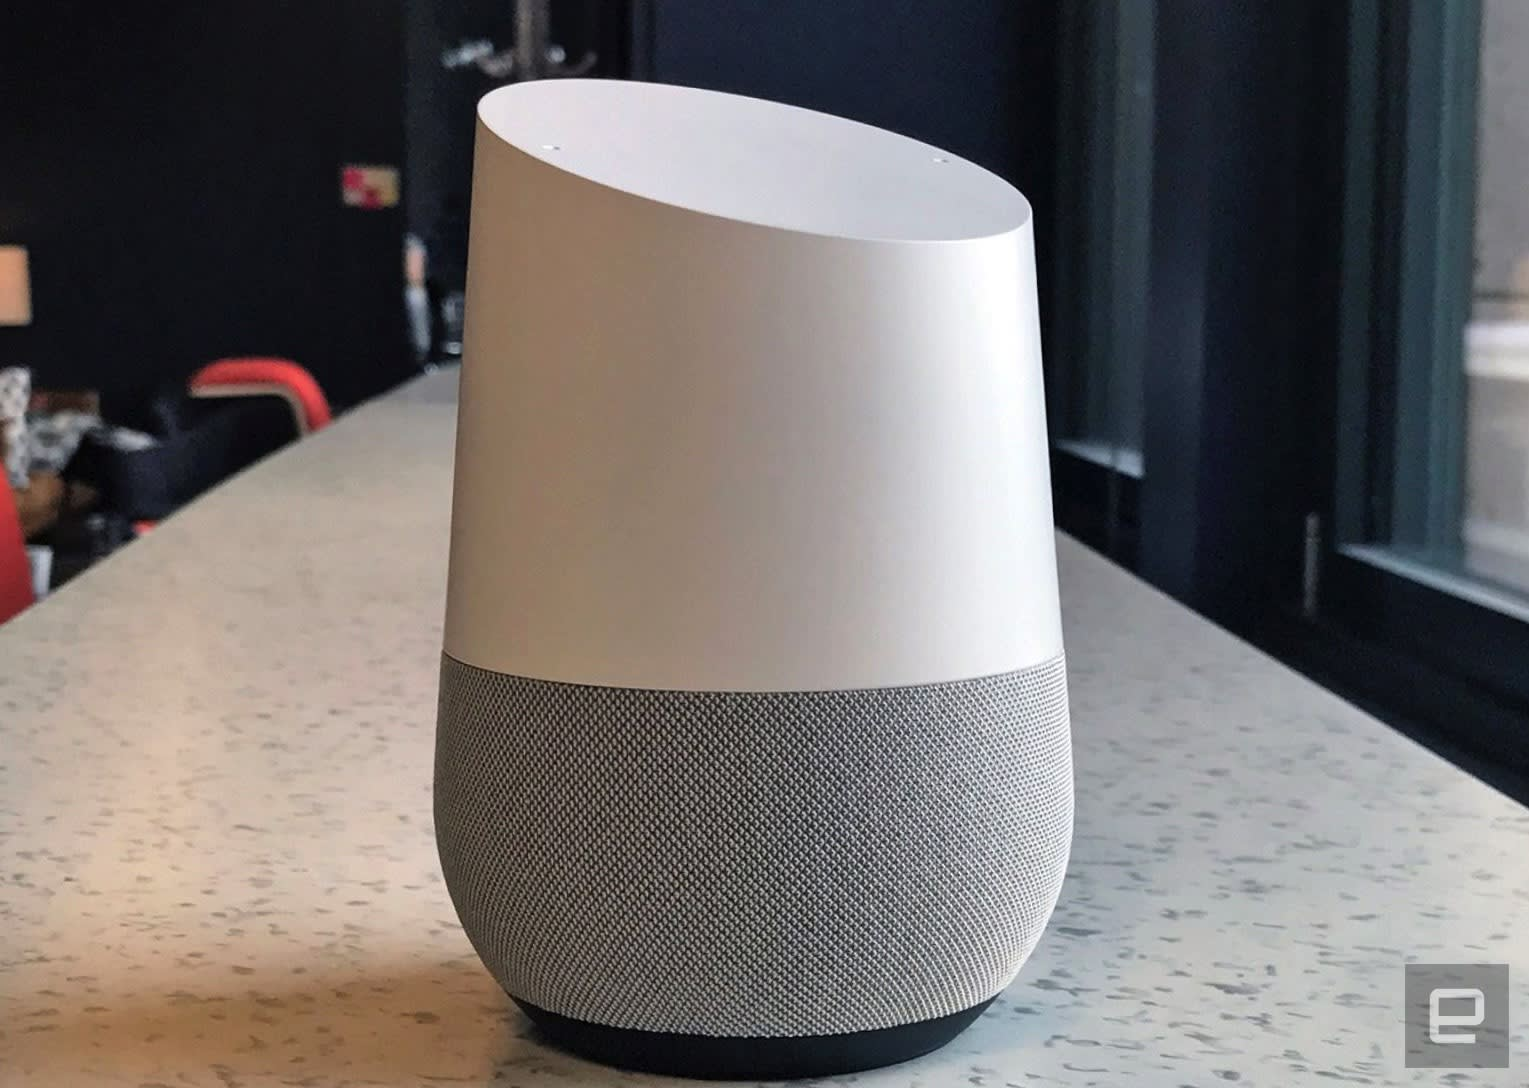 Google Assistant can speak Spanish on Home speakers